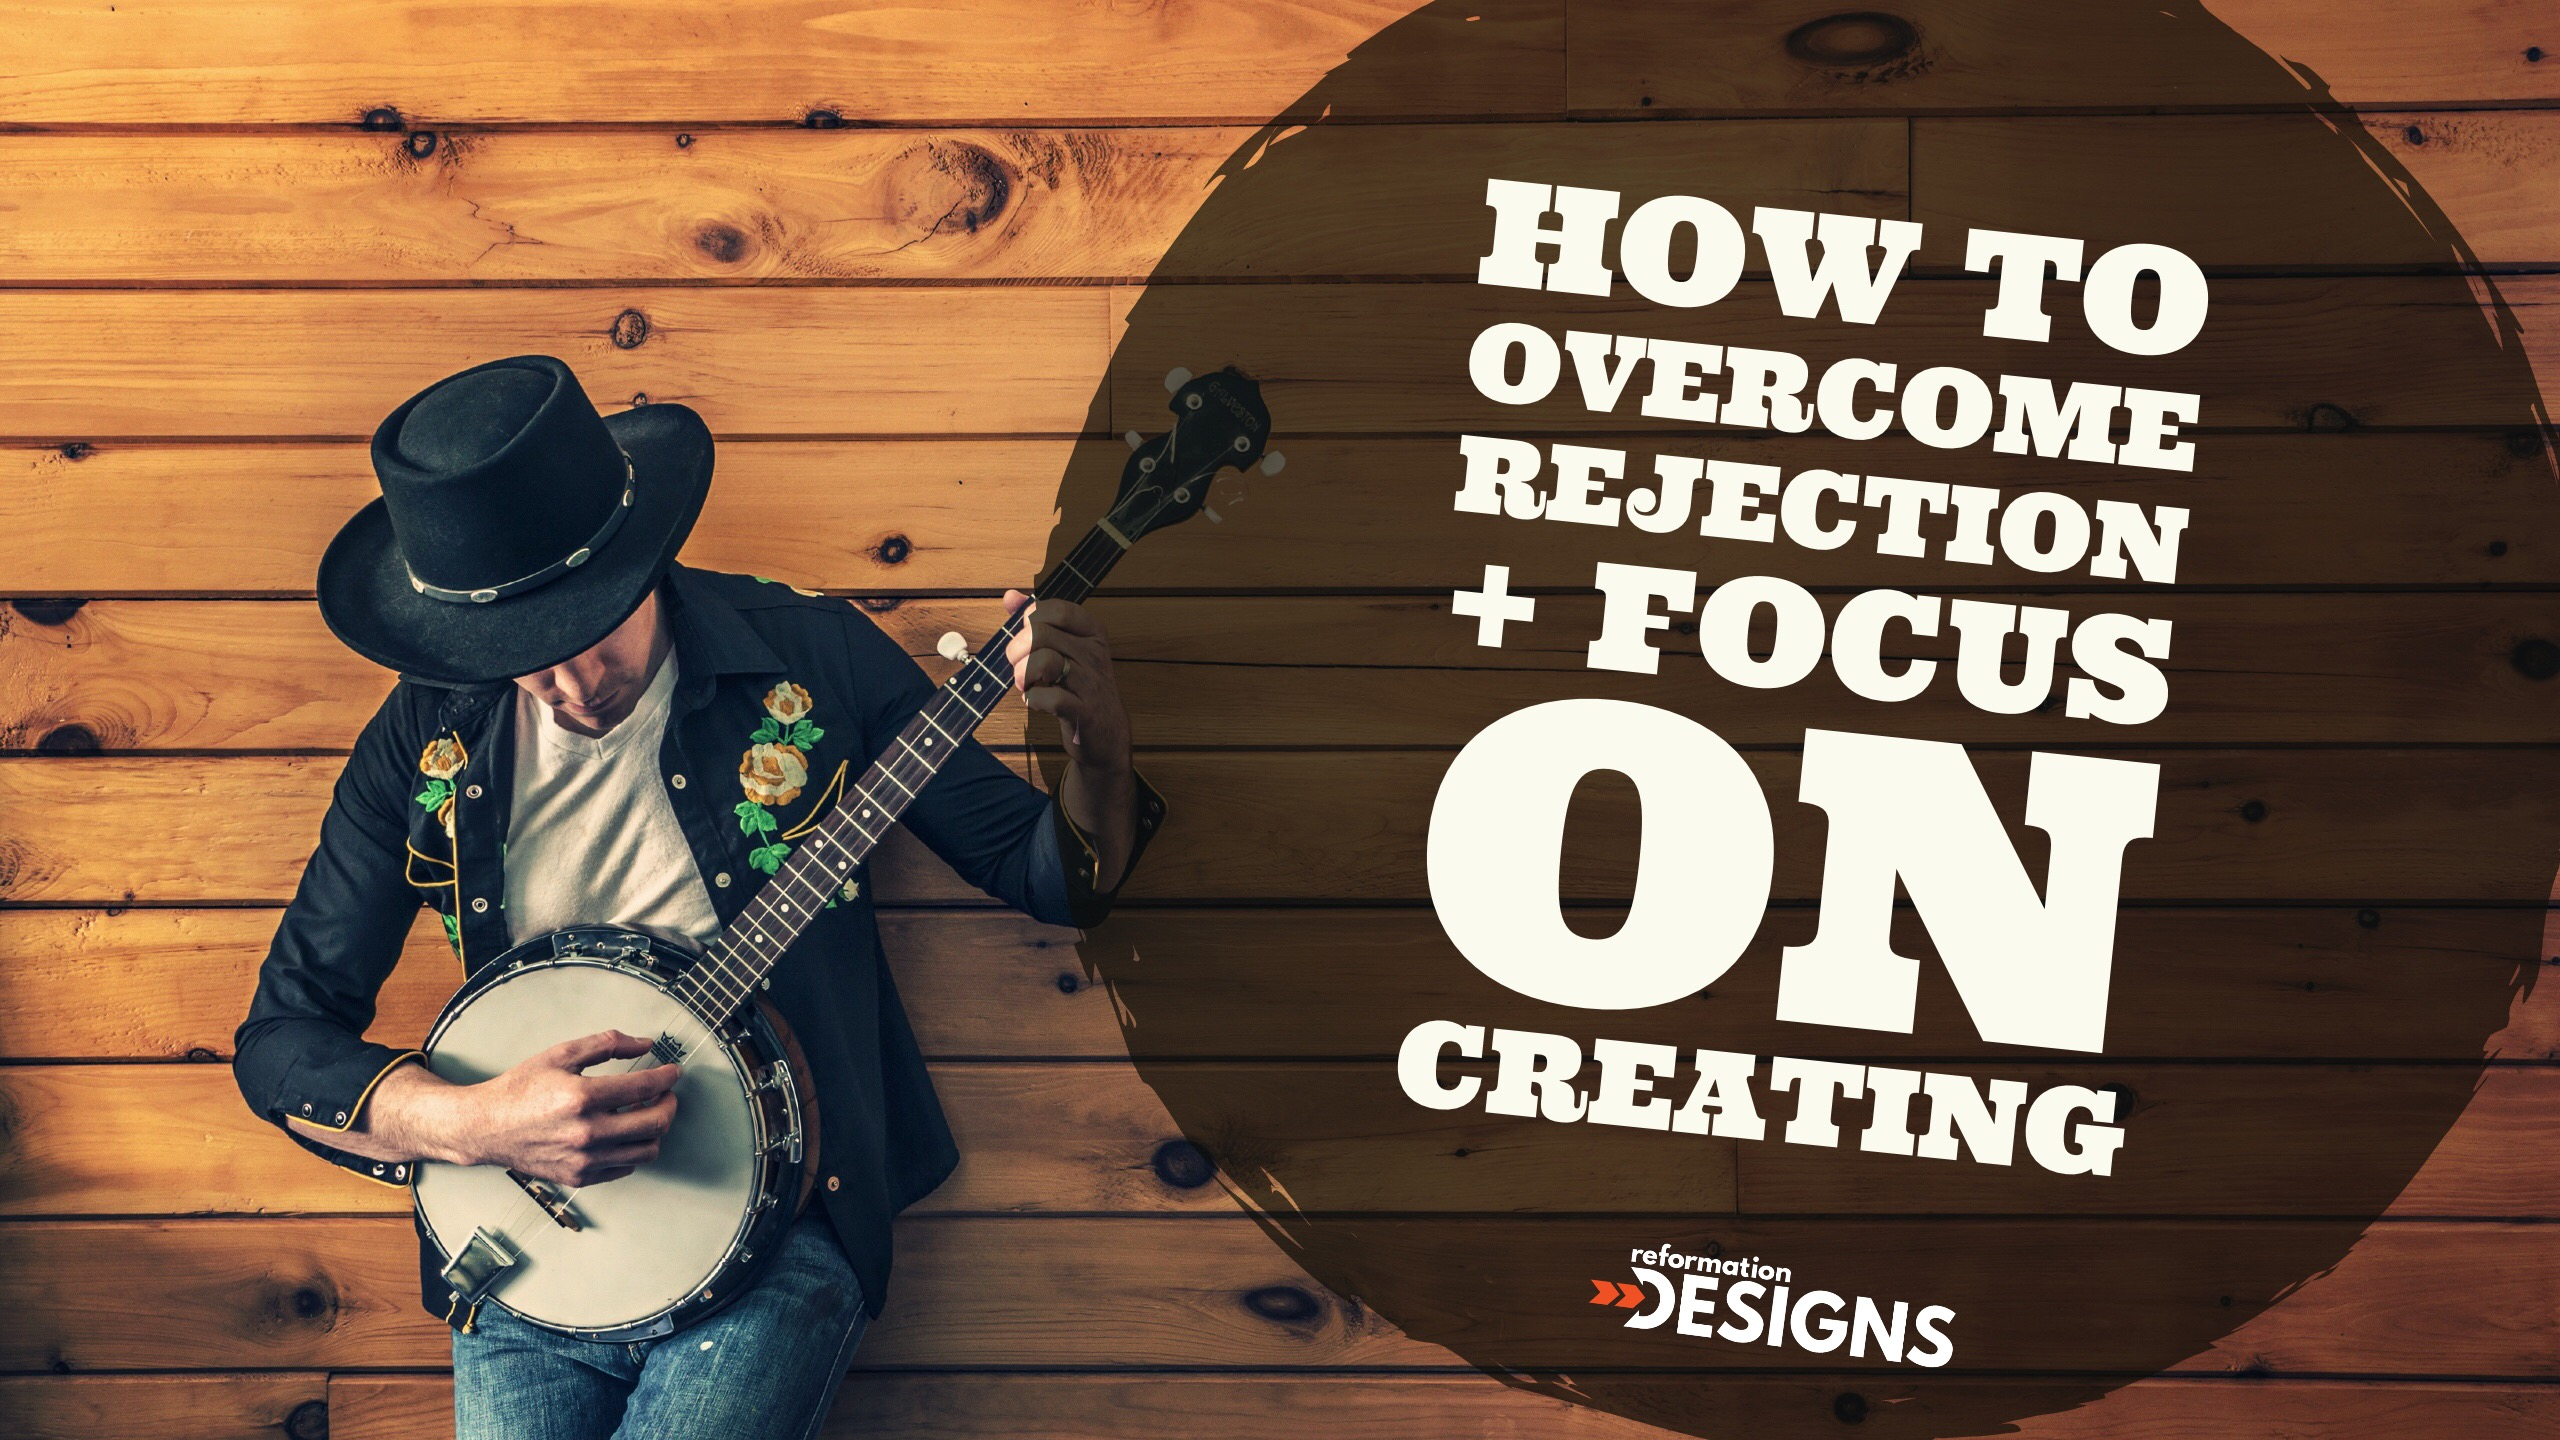 How to Overcome Rejection and Focus on Creating